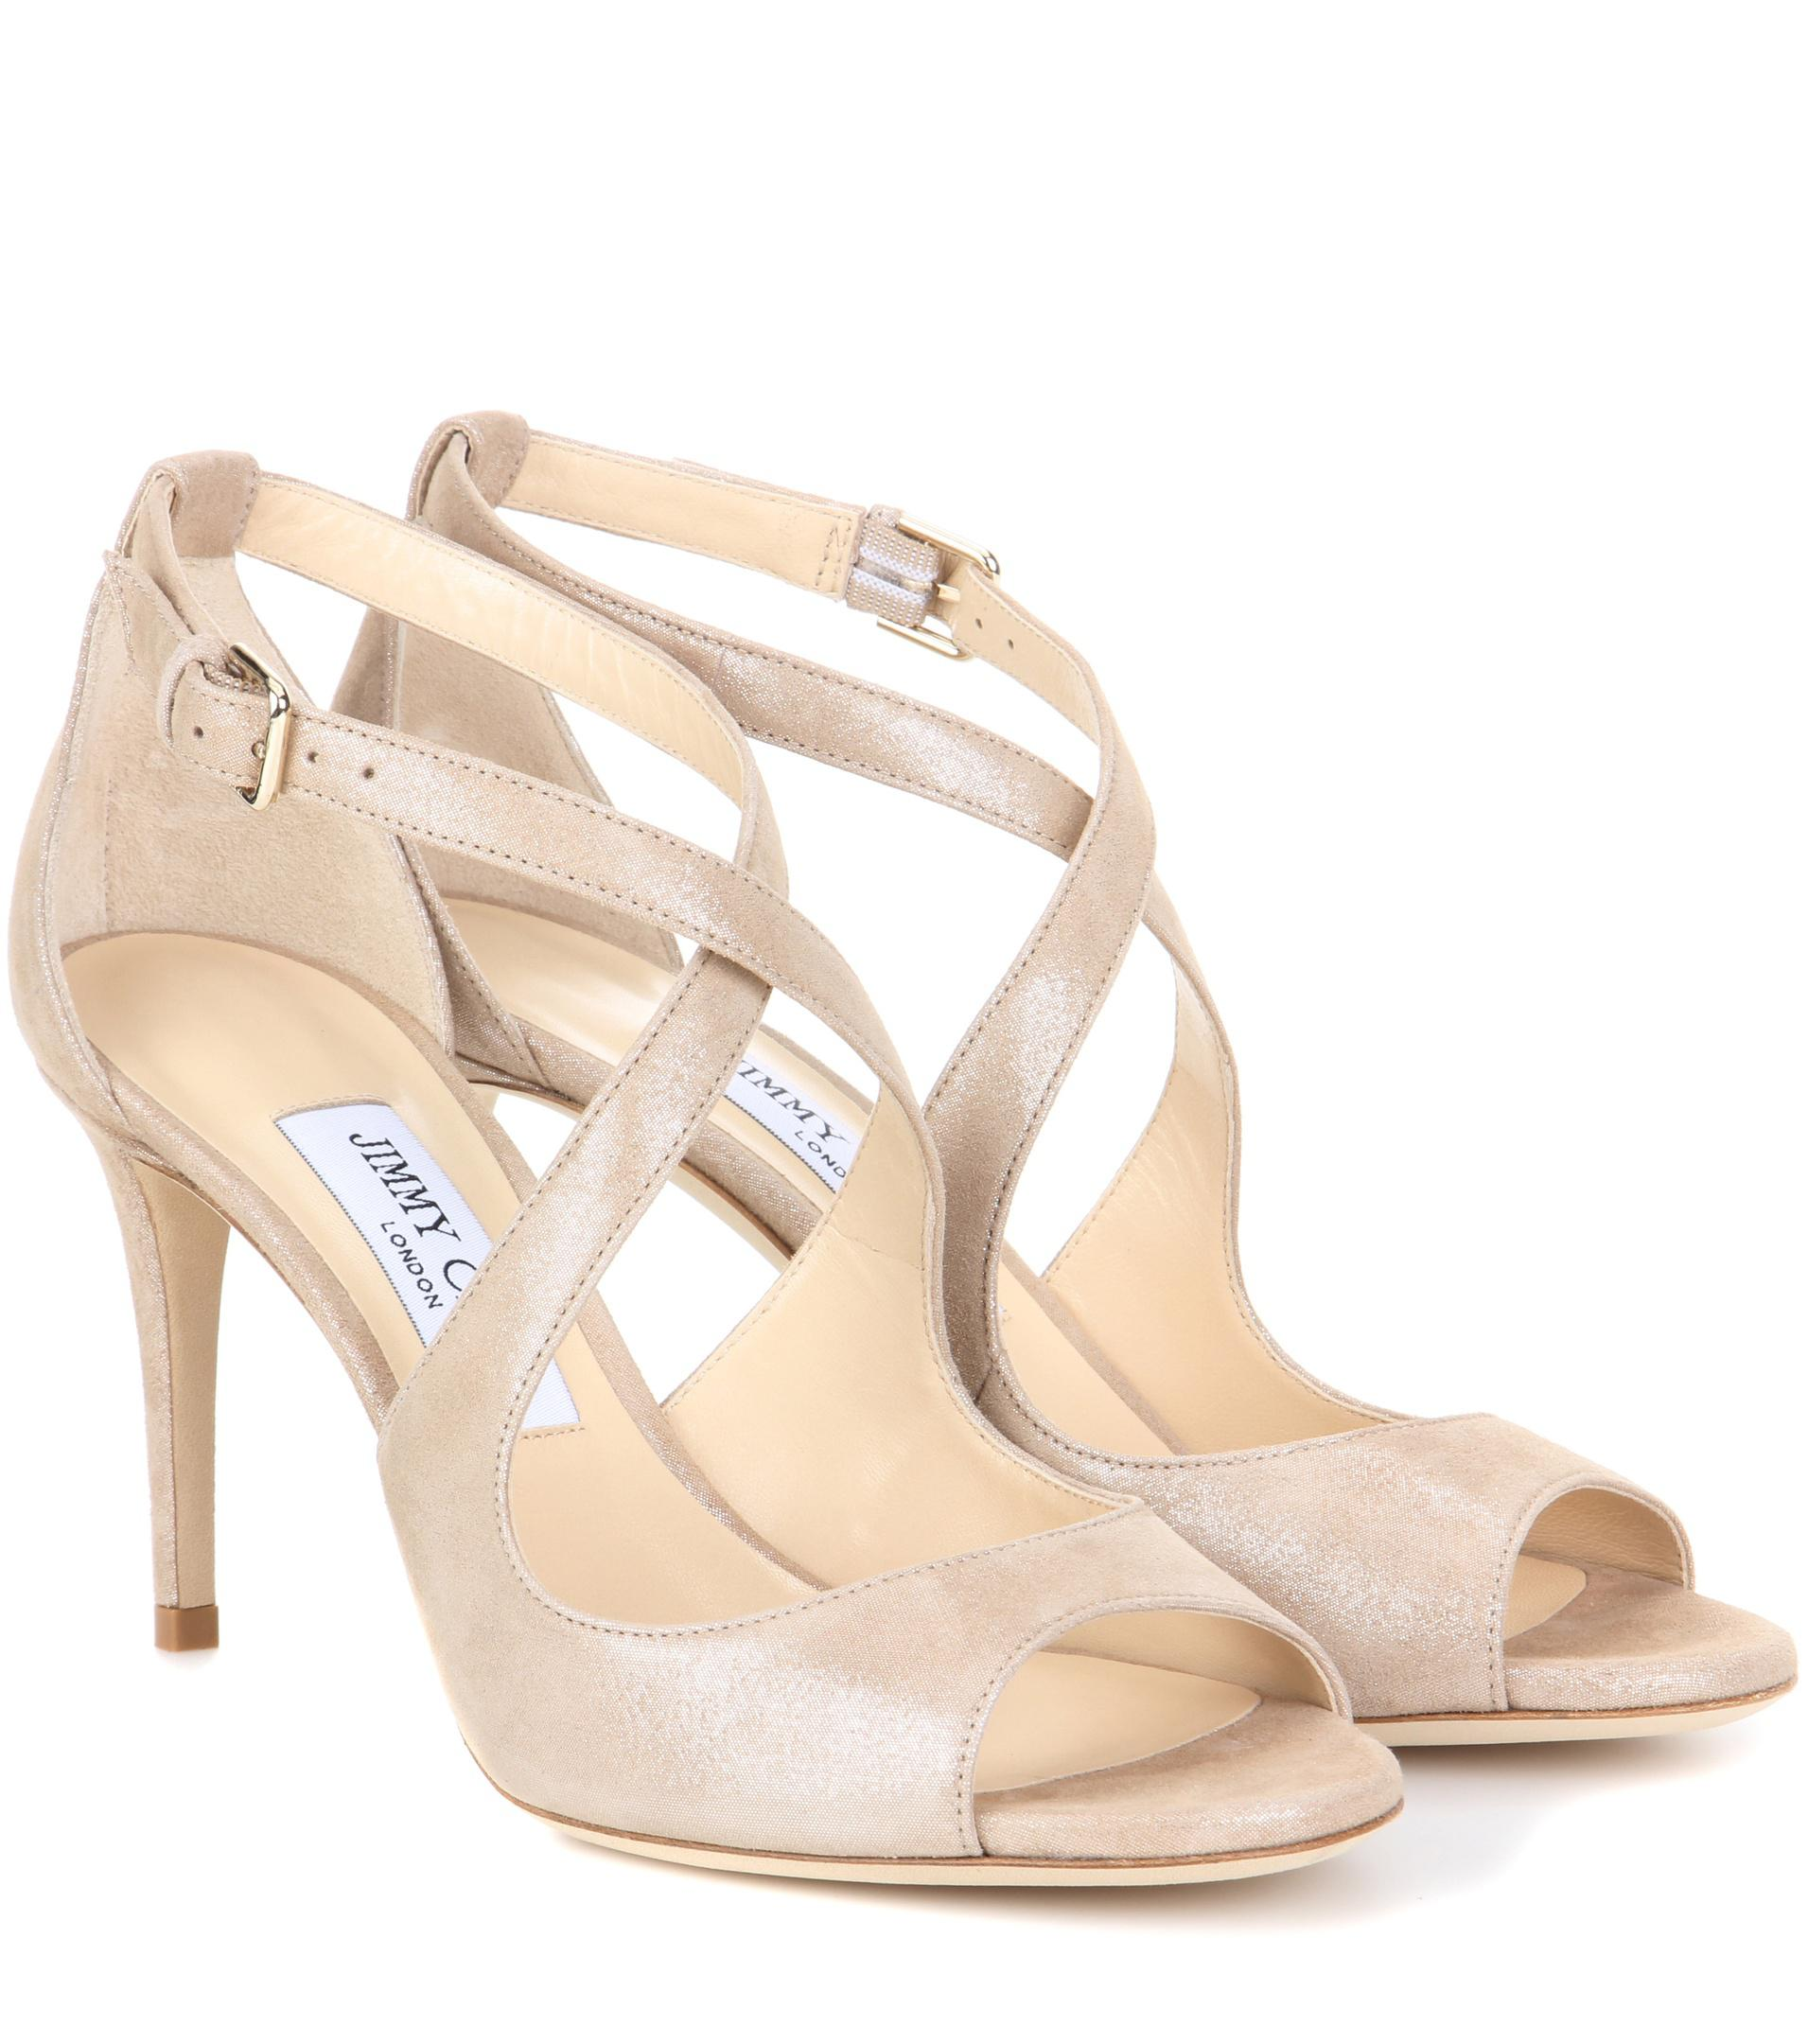 Jimmy choo Emily 65 suede sandals